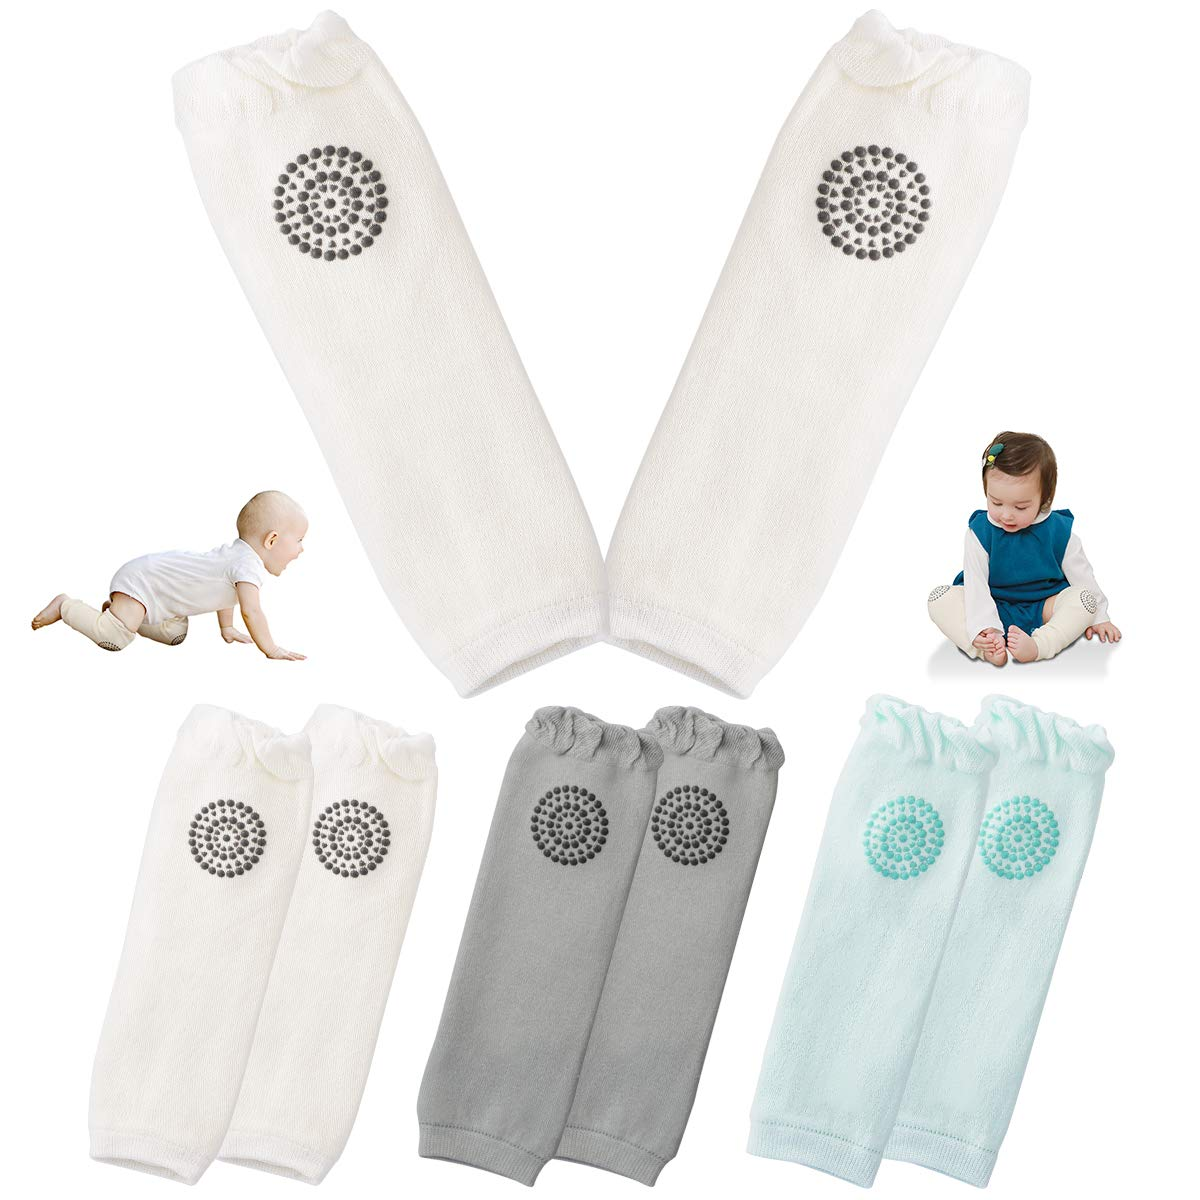 USA SELLER BABY LEG WARMERS 1 Size Fits All Girls Set of 4 pair